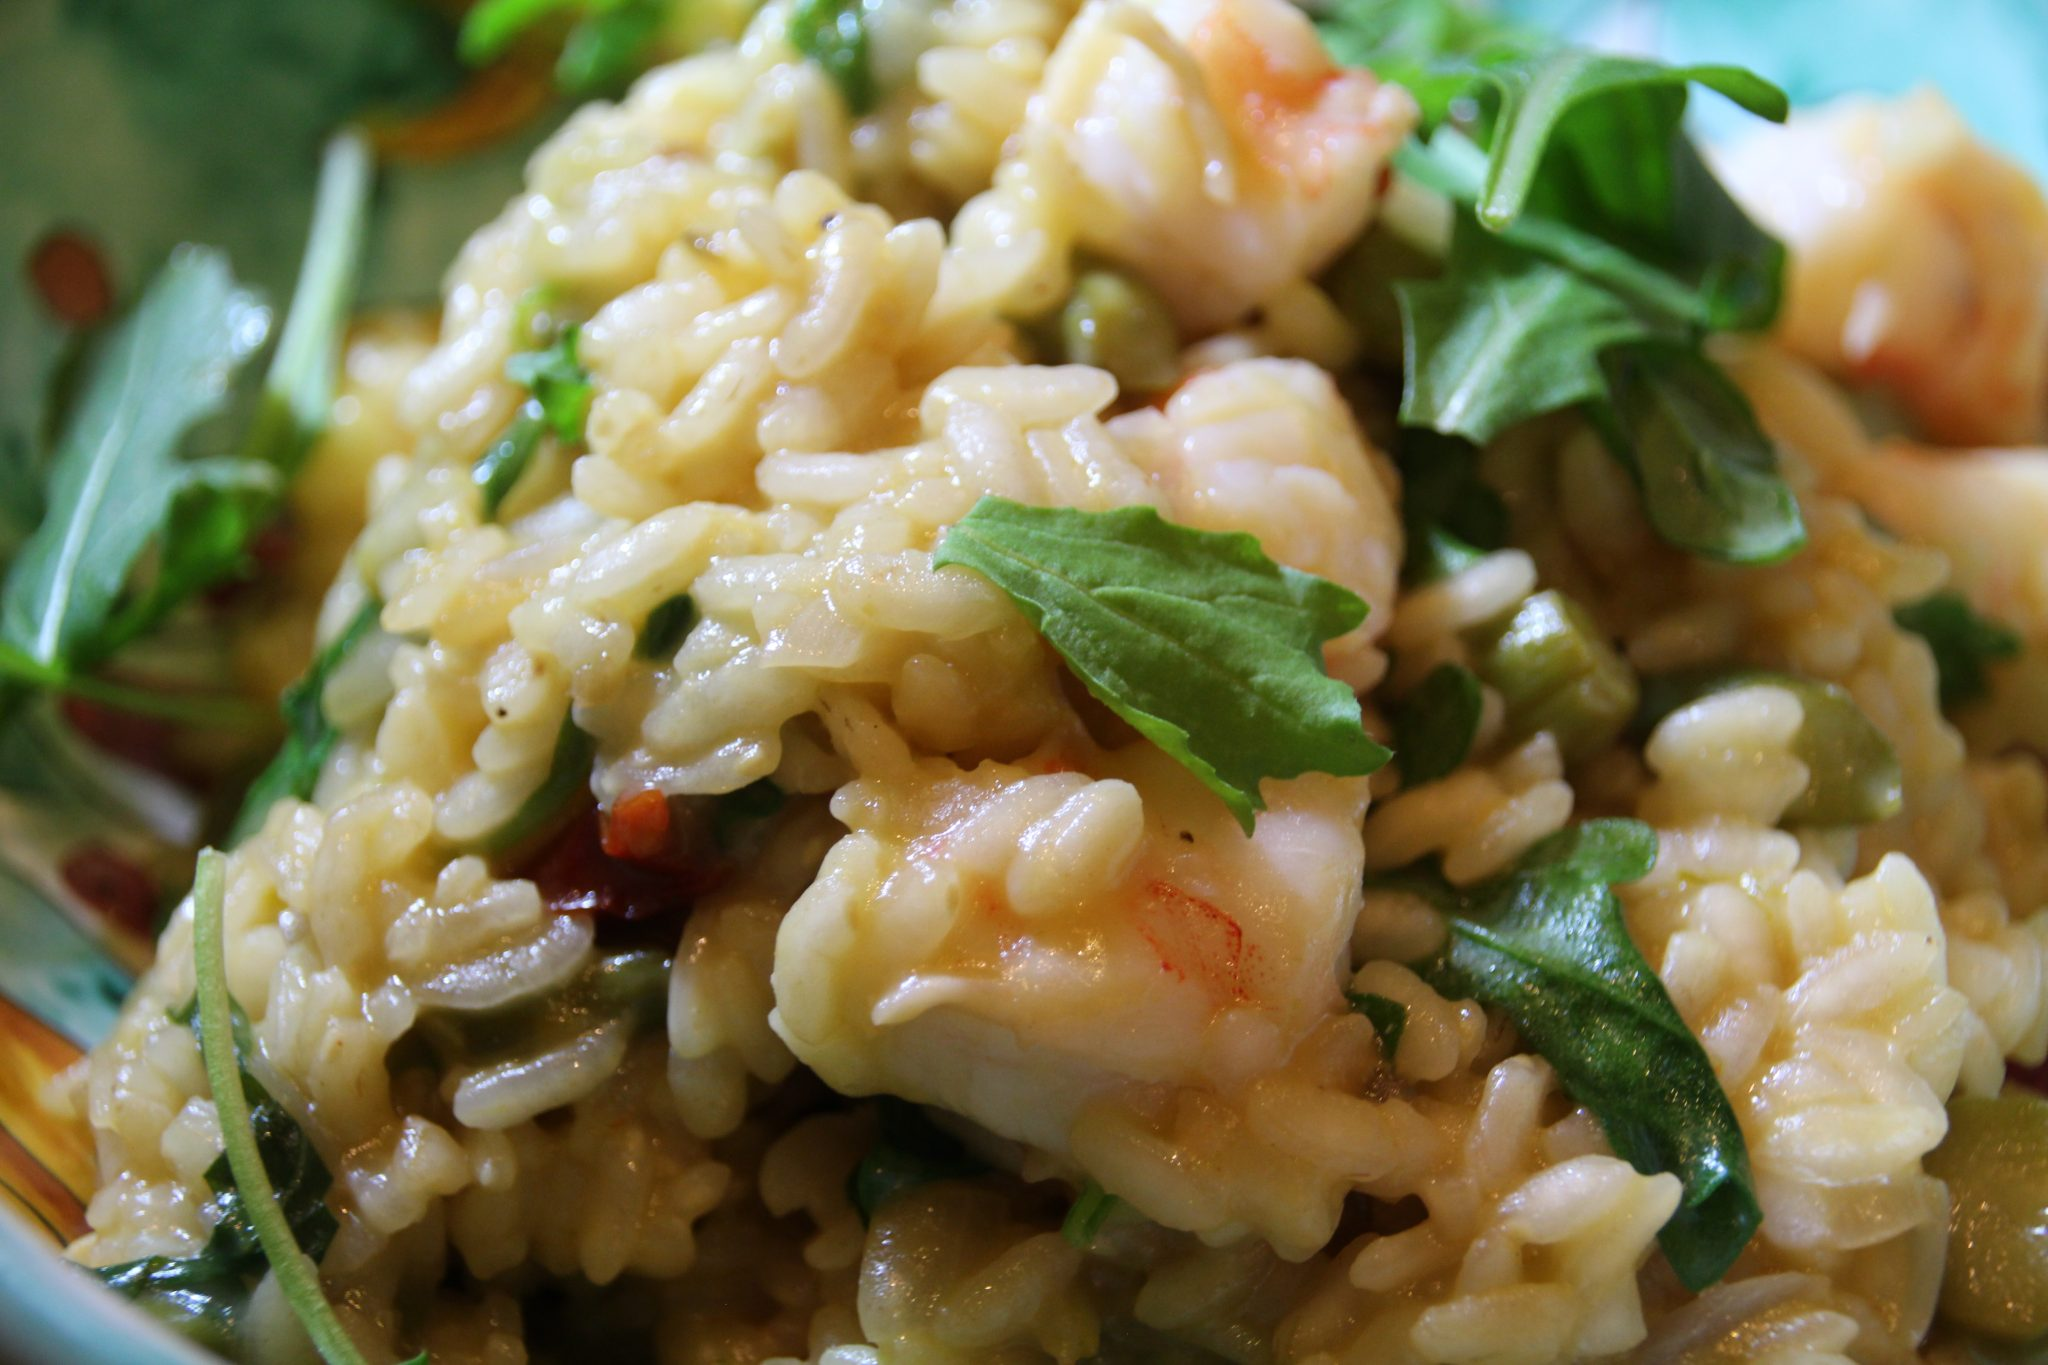 Risotto with Shrimps, Scallops and Asparagus